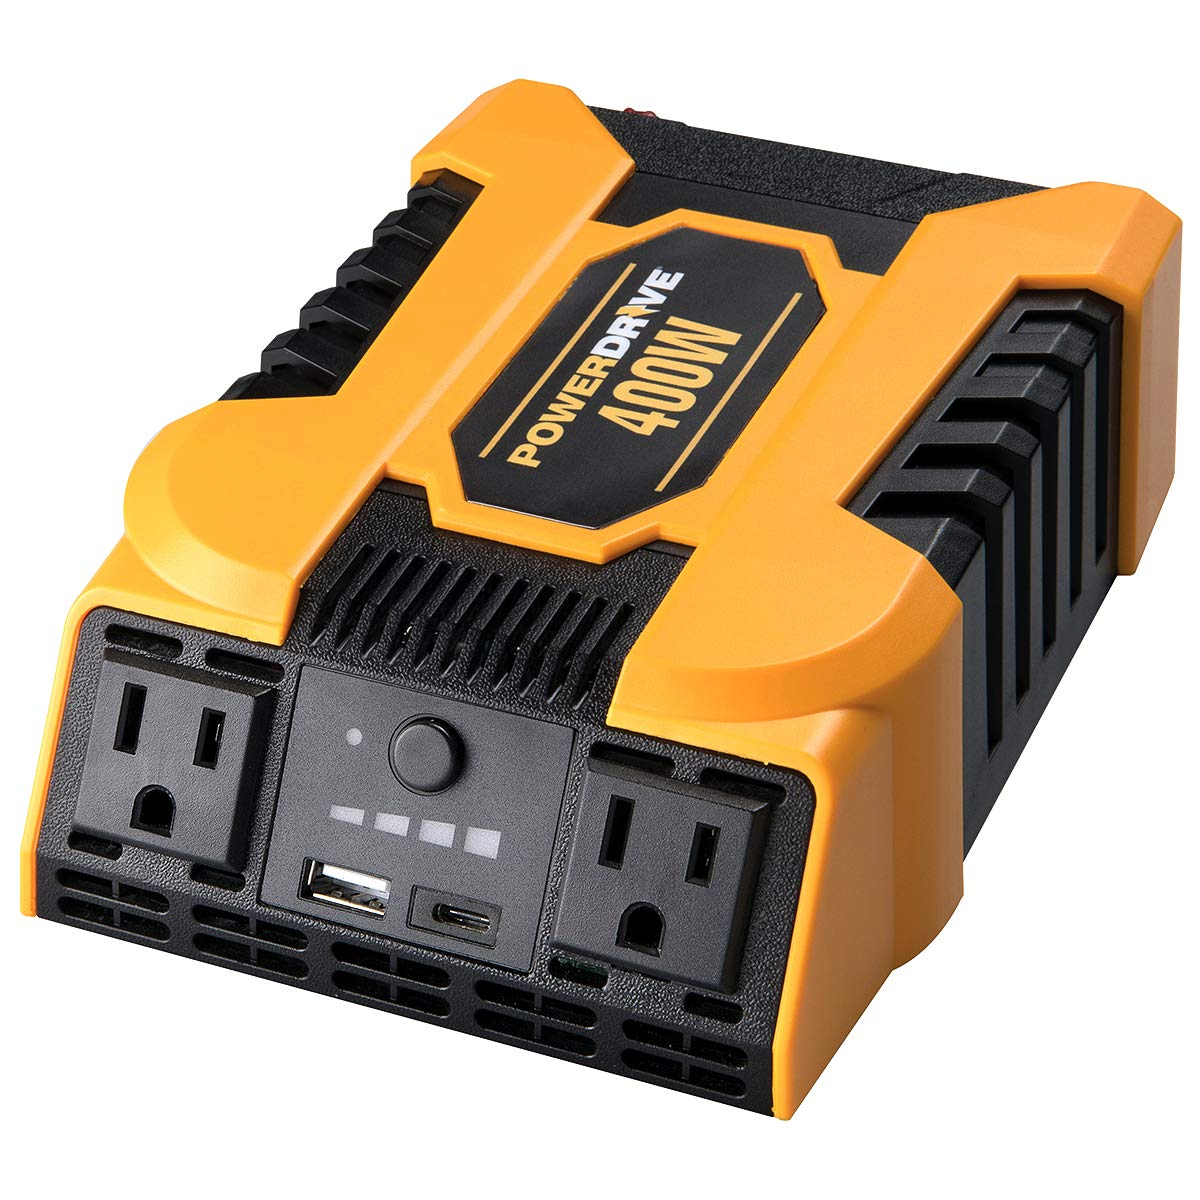 POWERDRIVE Improved & Updated 400W Power Inverter with 2 AC outlets and Dual Ports, USB 2.4A and USB-C 3.0A by POWERDRIVE